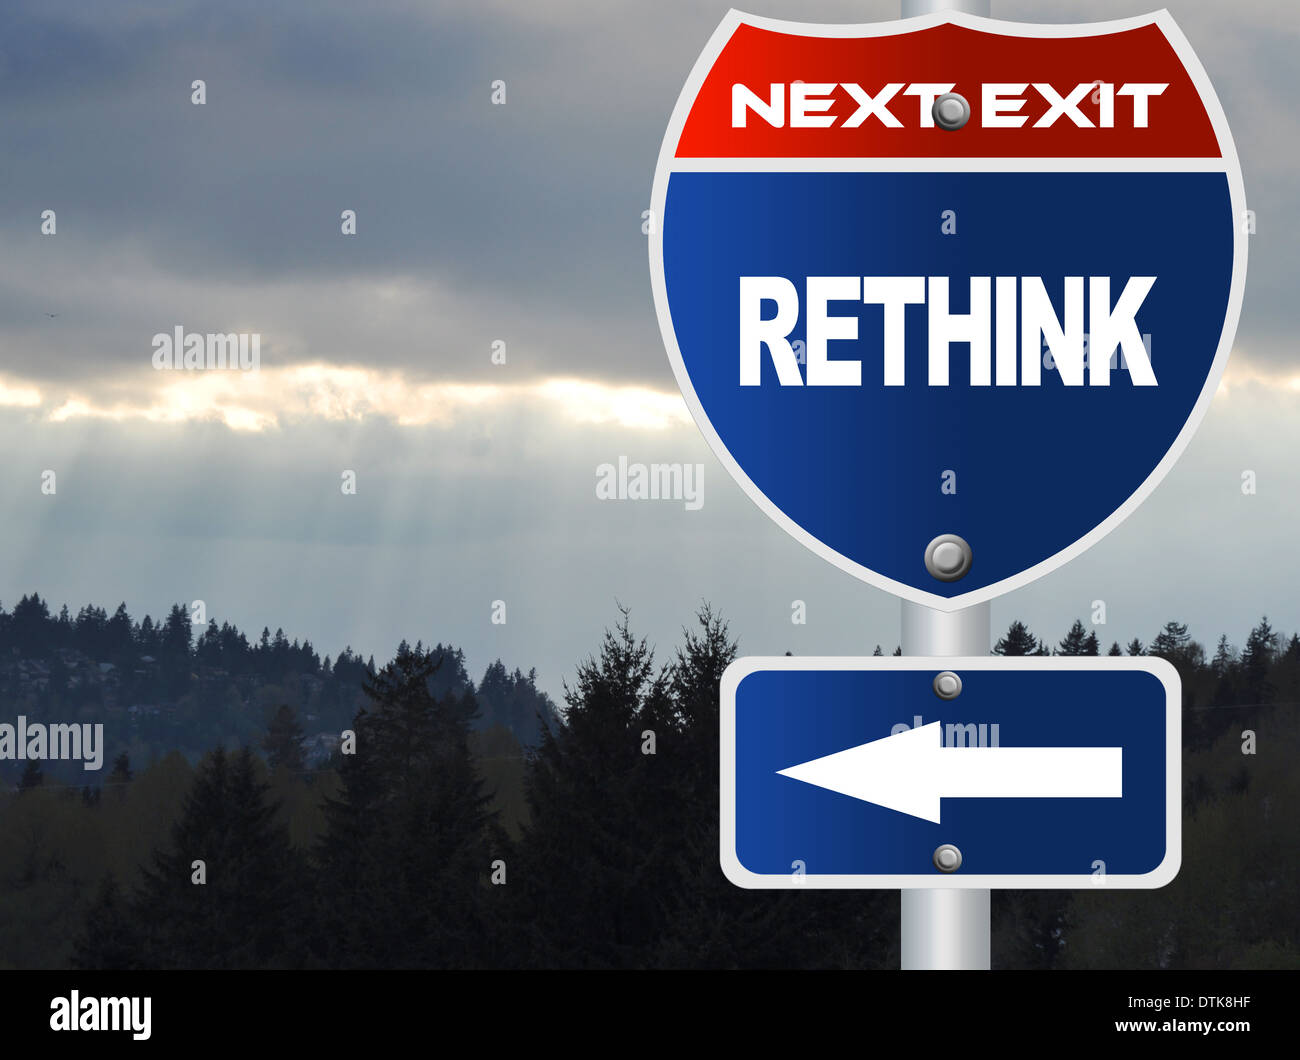 Rethink road sign - Stock Image